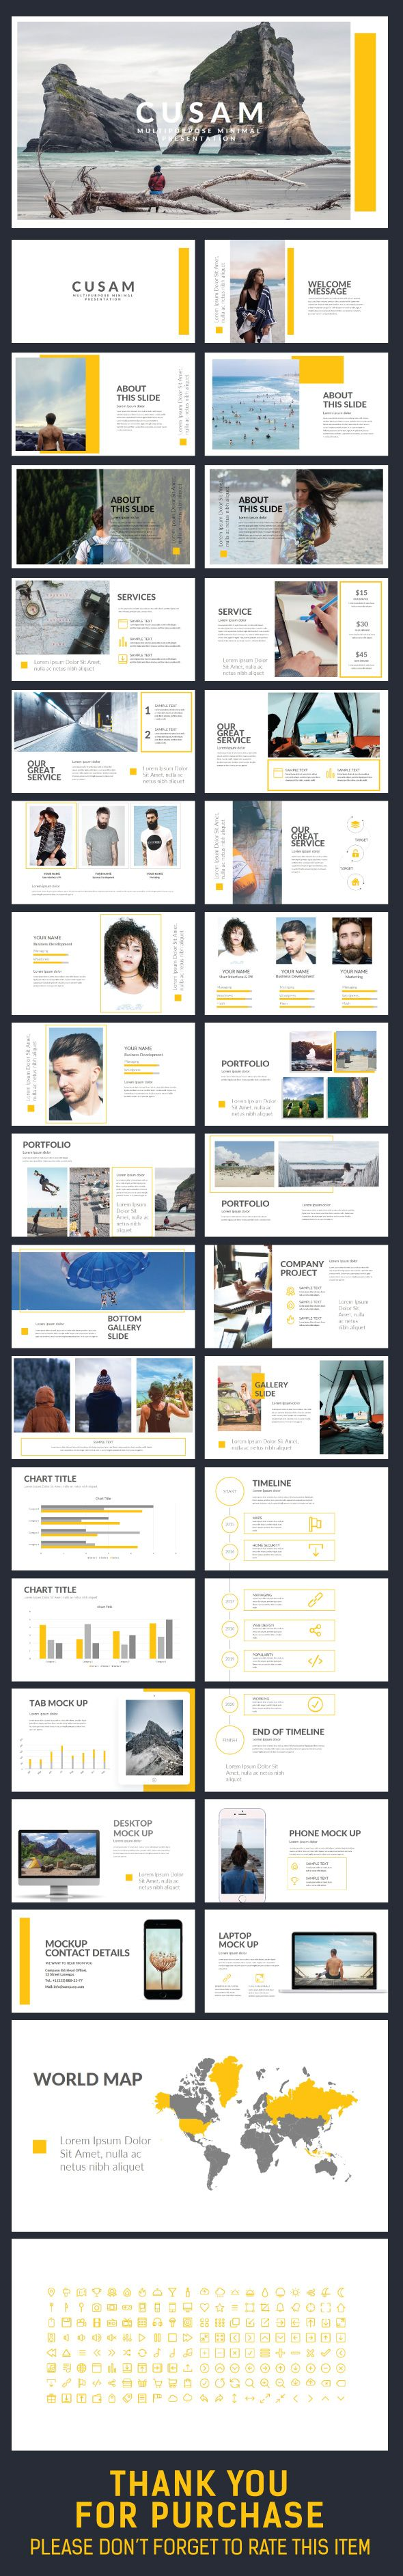 CUSAM #Presentation Template - Creative #PowerPoint Templates